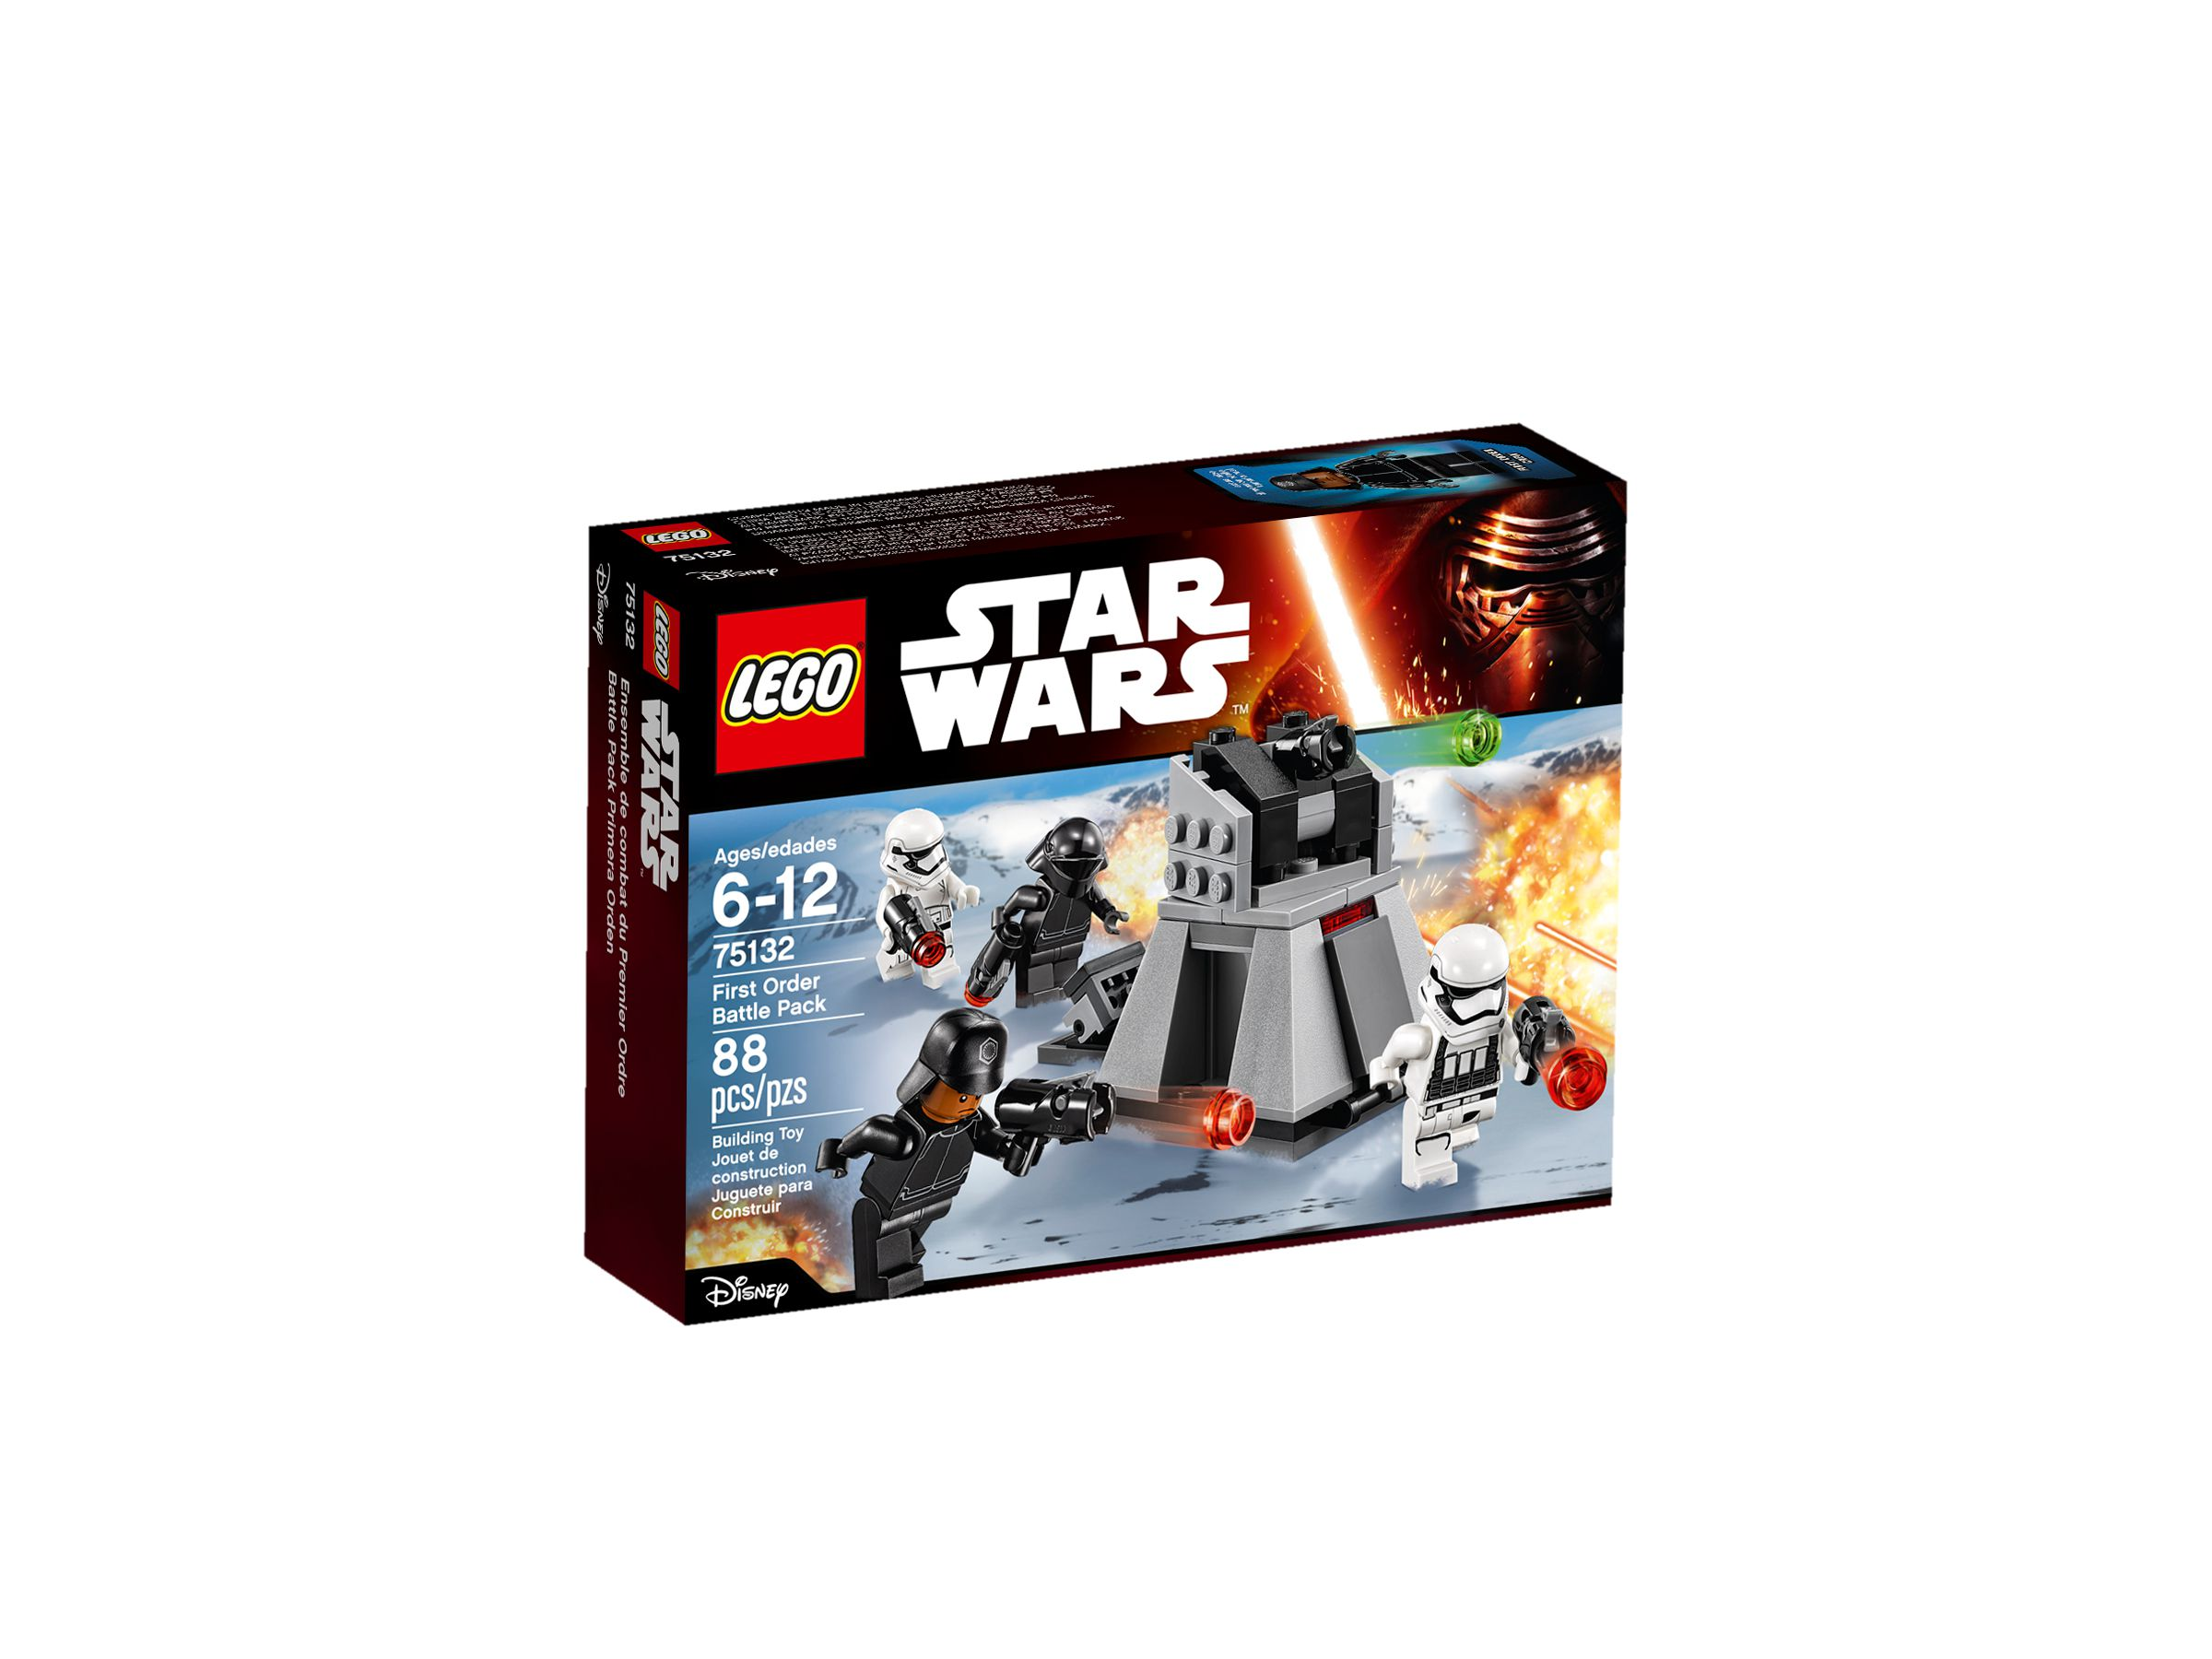 LEGO Star Wars 75132 First Order Battle Pack LEGO_75132_alt1.jpg